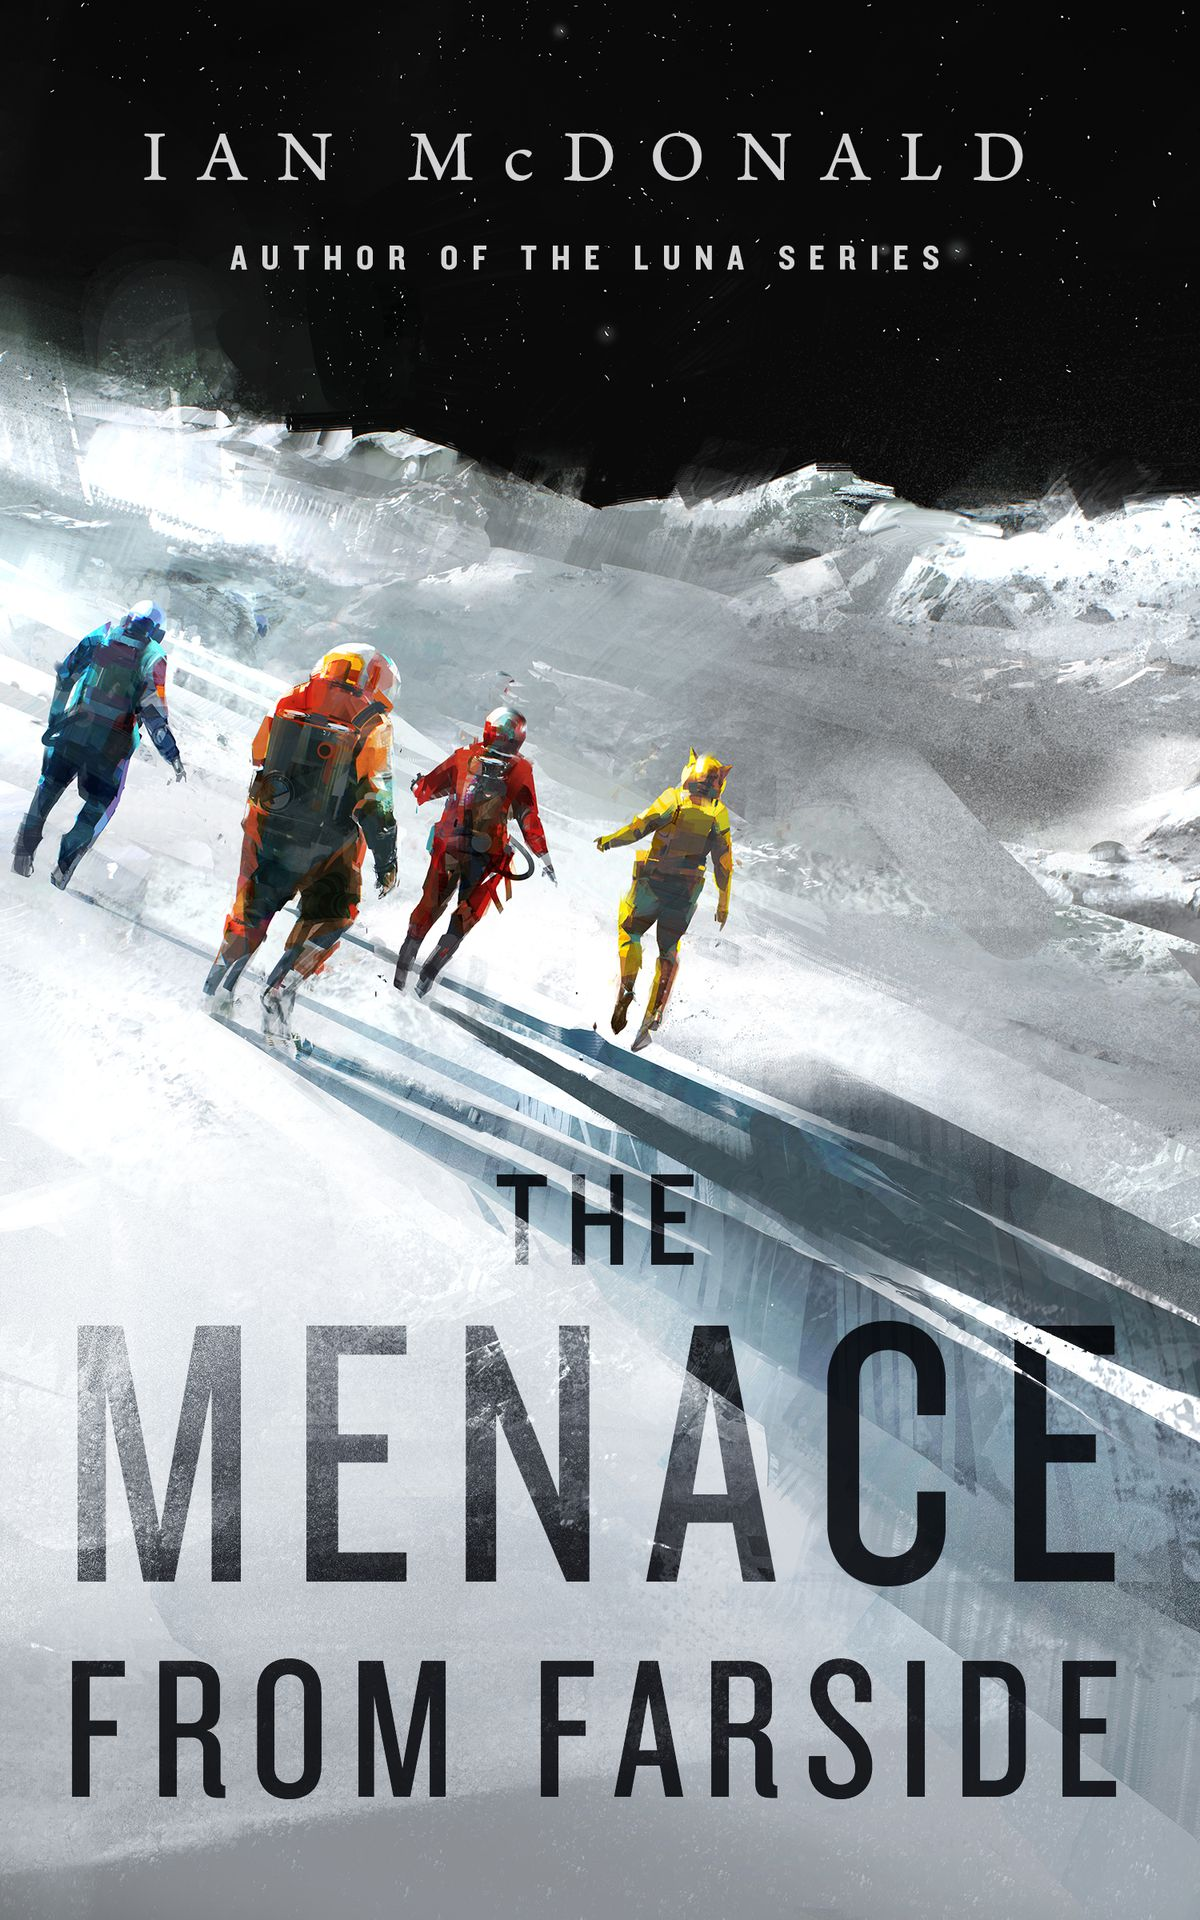 The Menace from Farside cover has four people in space suits walking on an ice planet